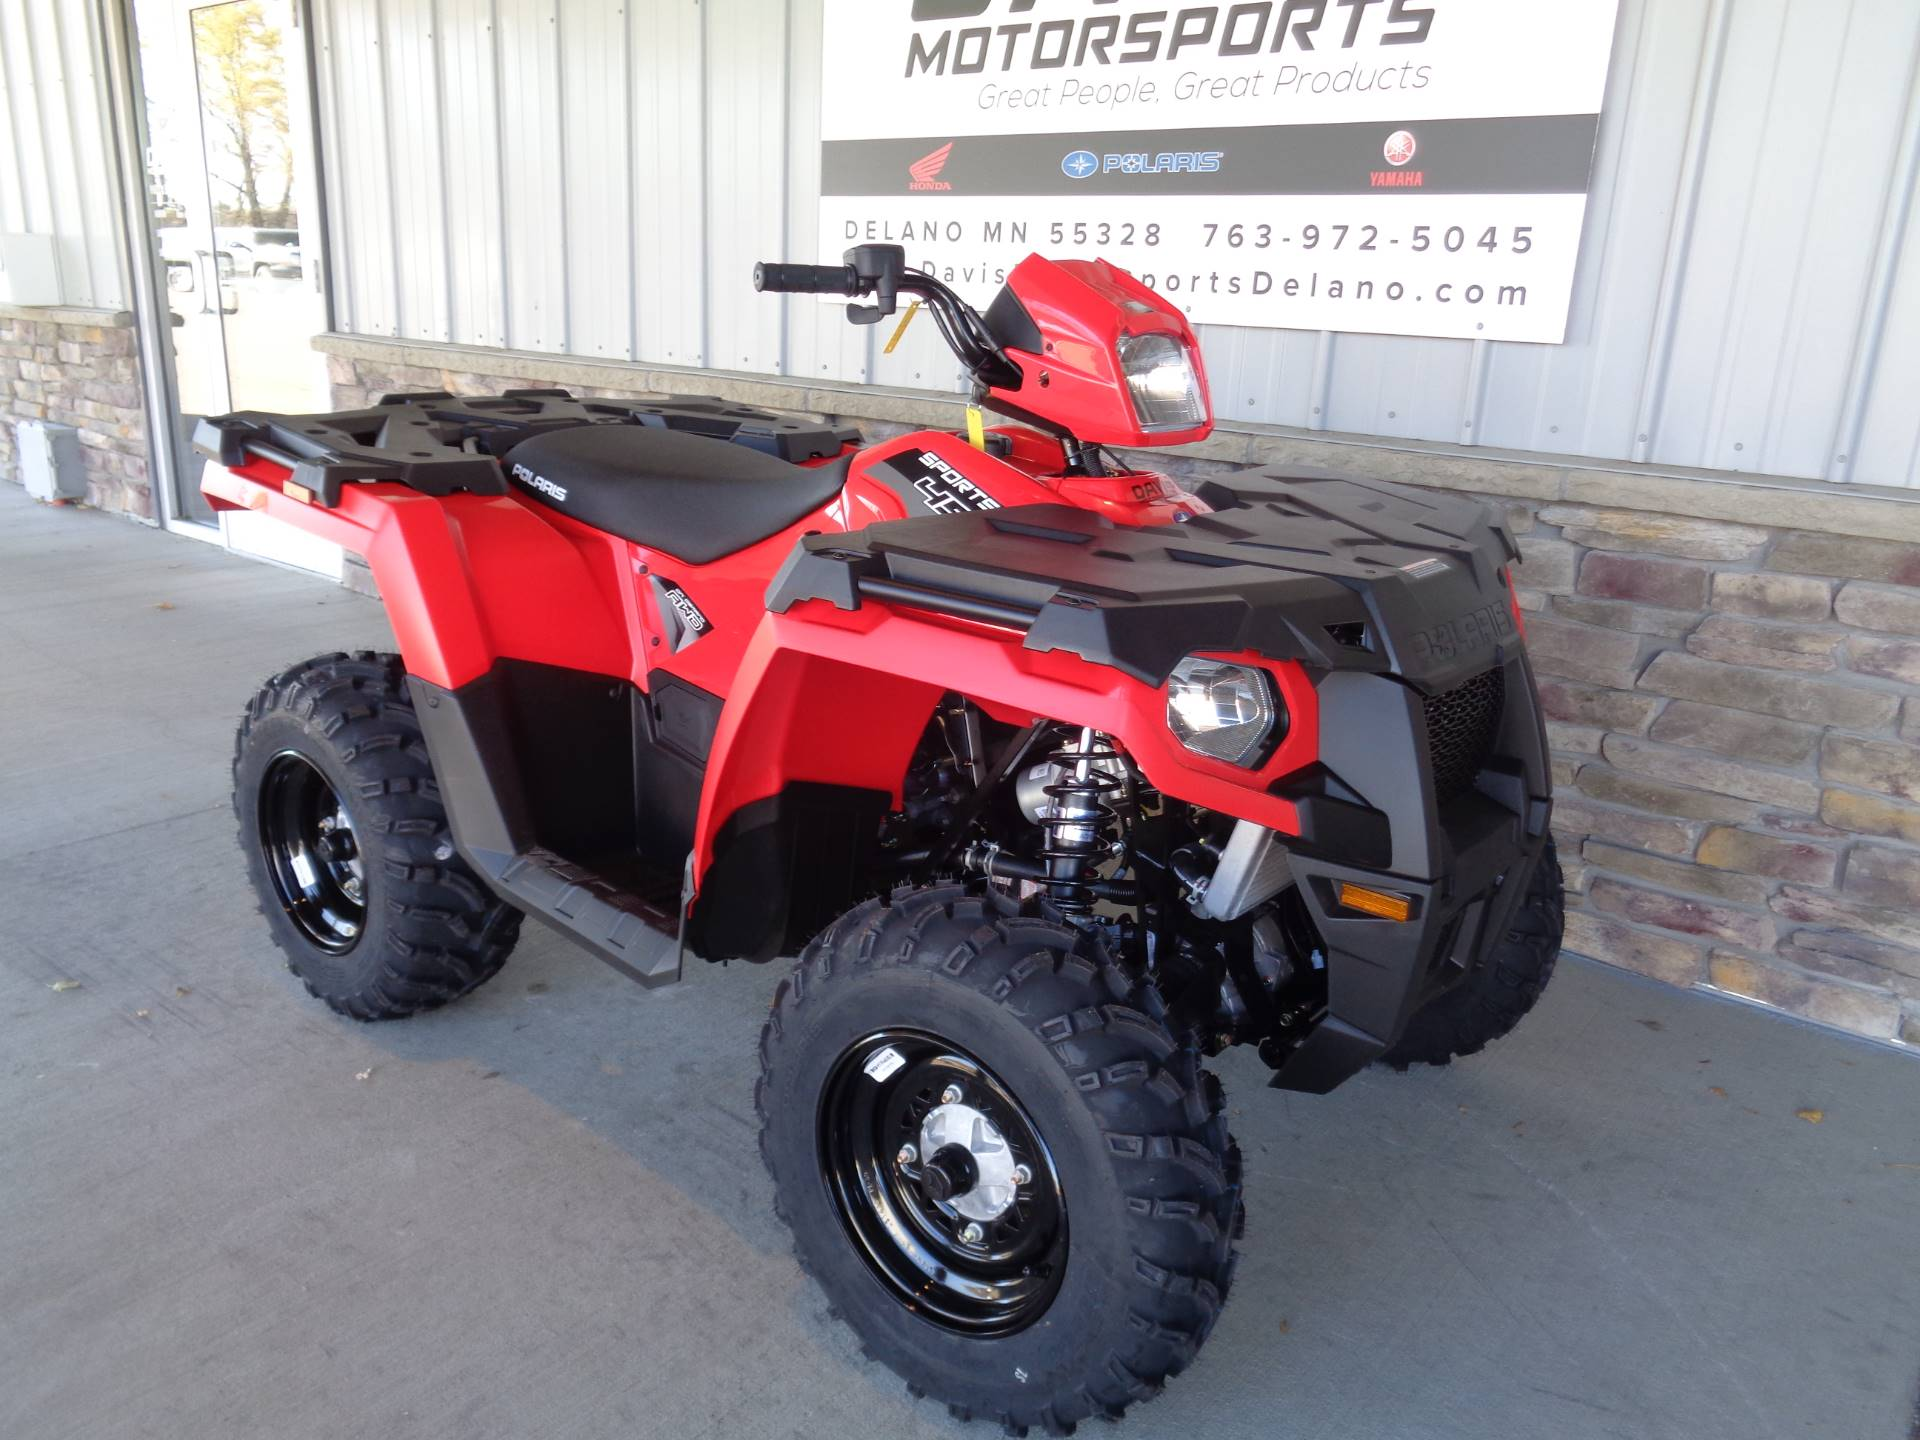 2019 Polaris Sportsman 450 H.O. EPS in Delano, Minnesota - Photo 3